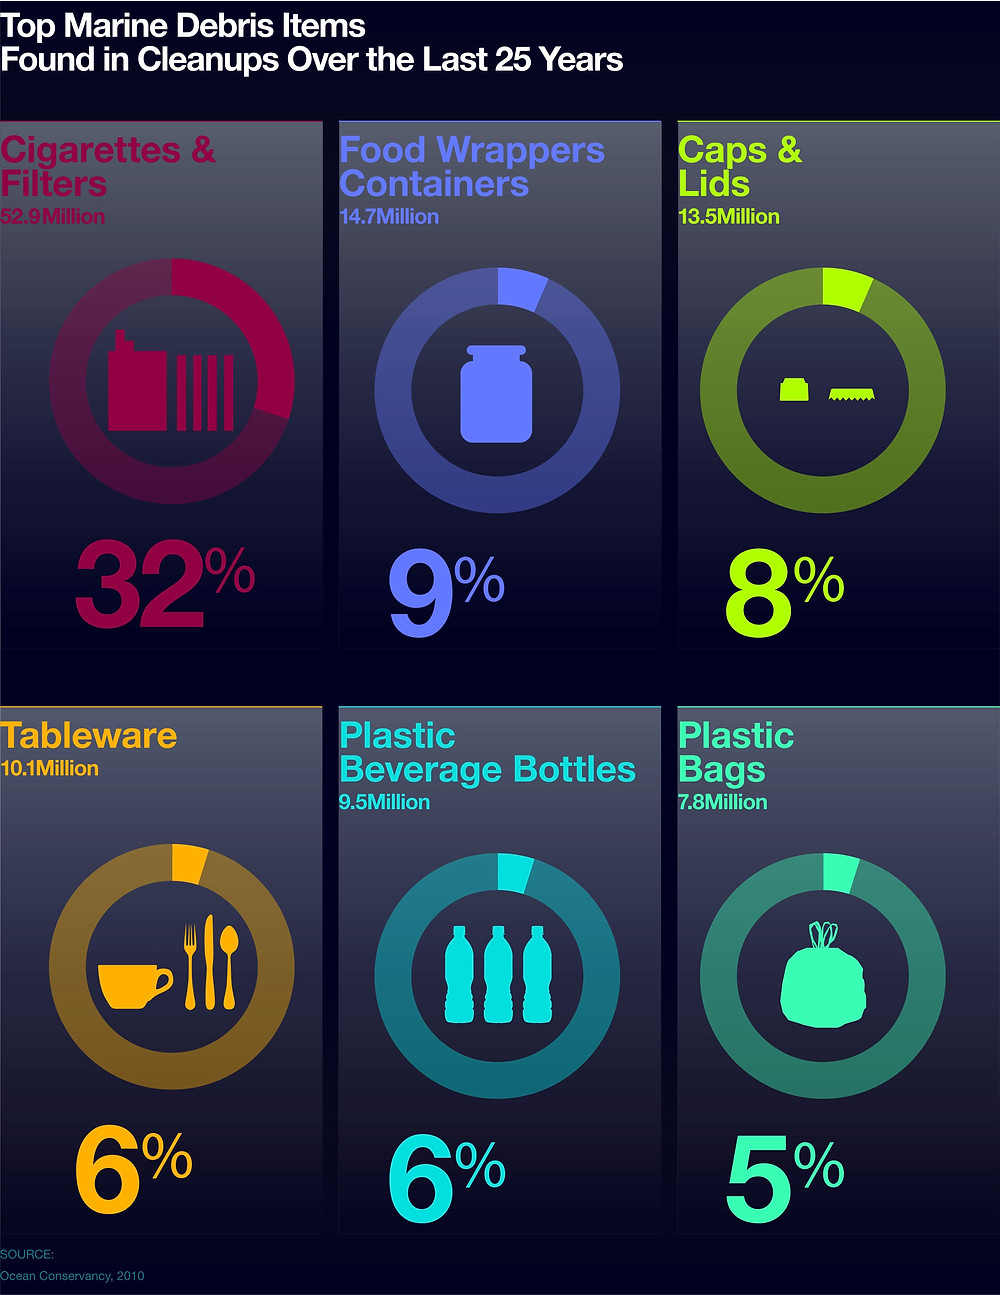 http://www.oceanhealthindex.org/methodology/components/trash-pollution